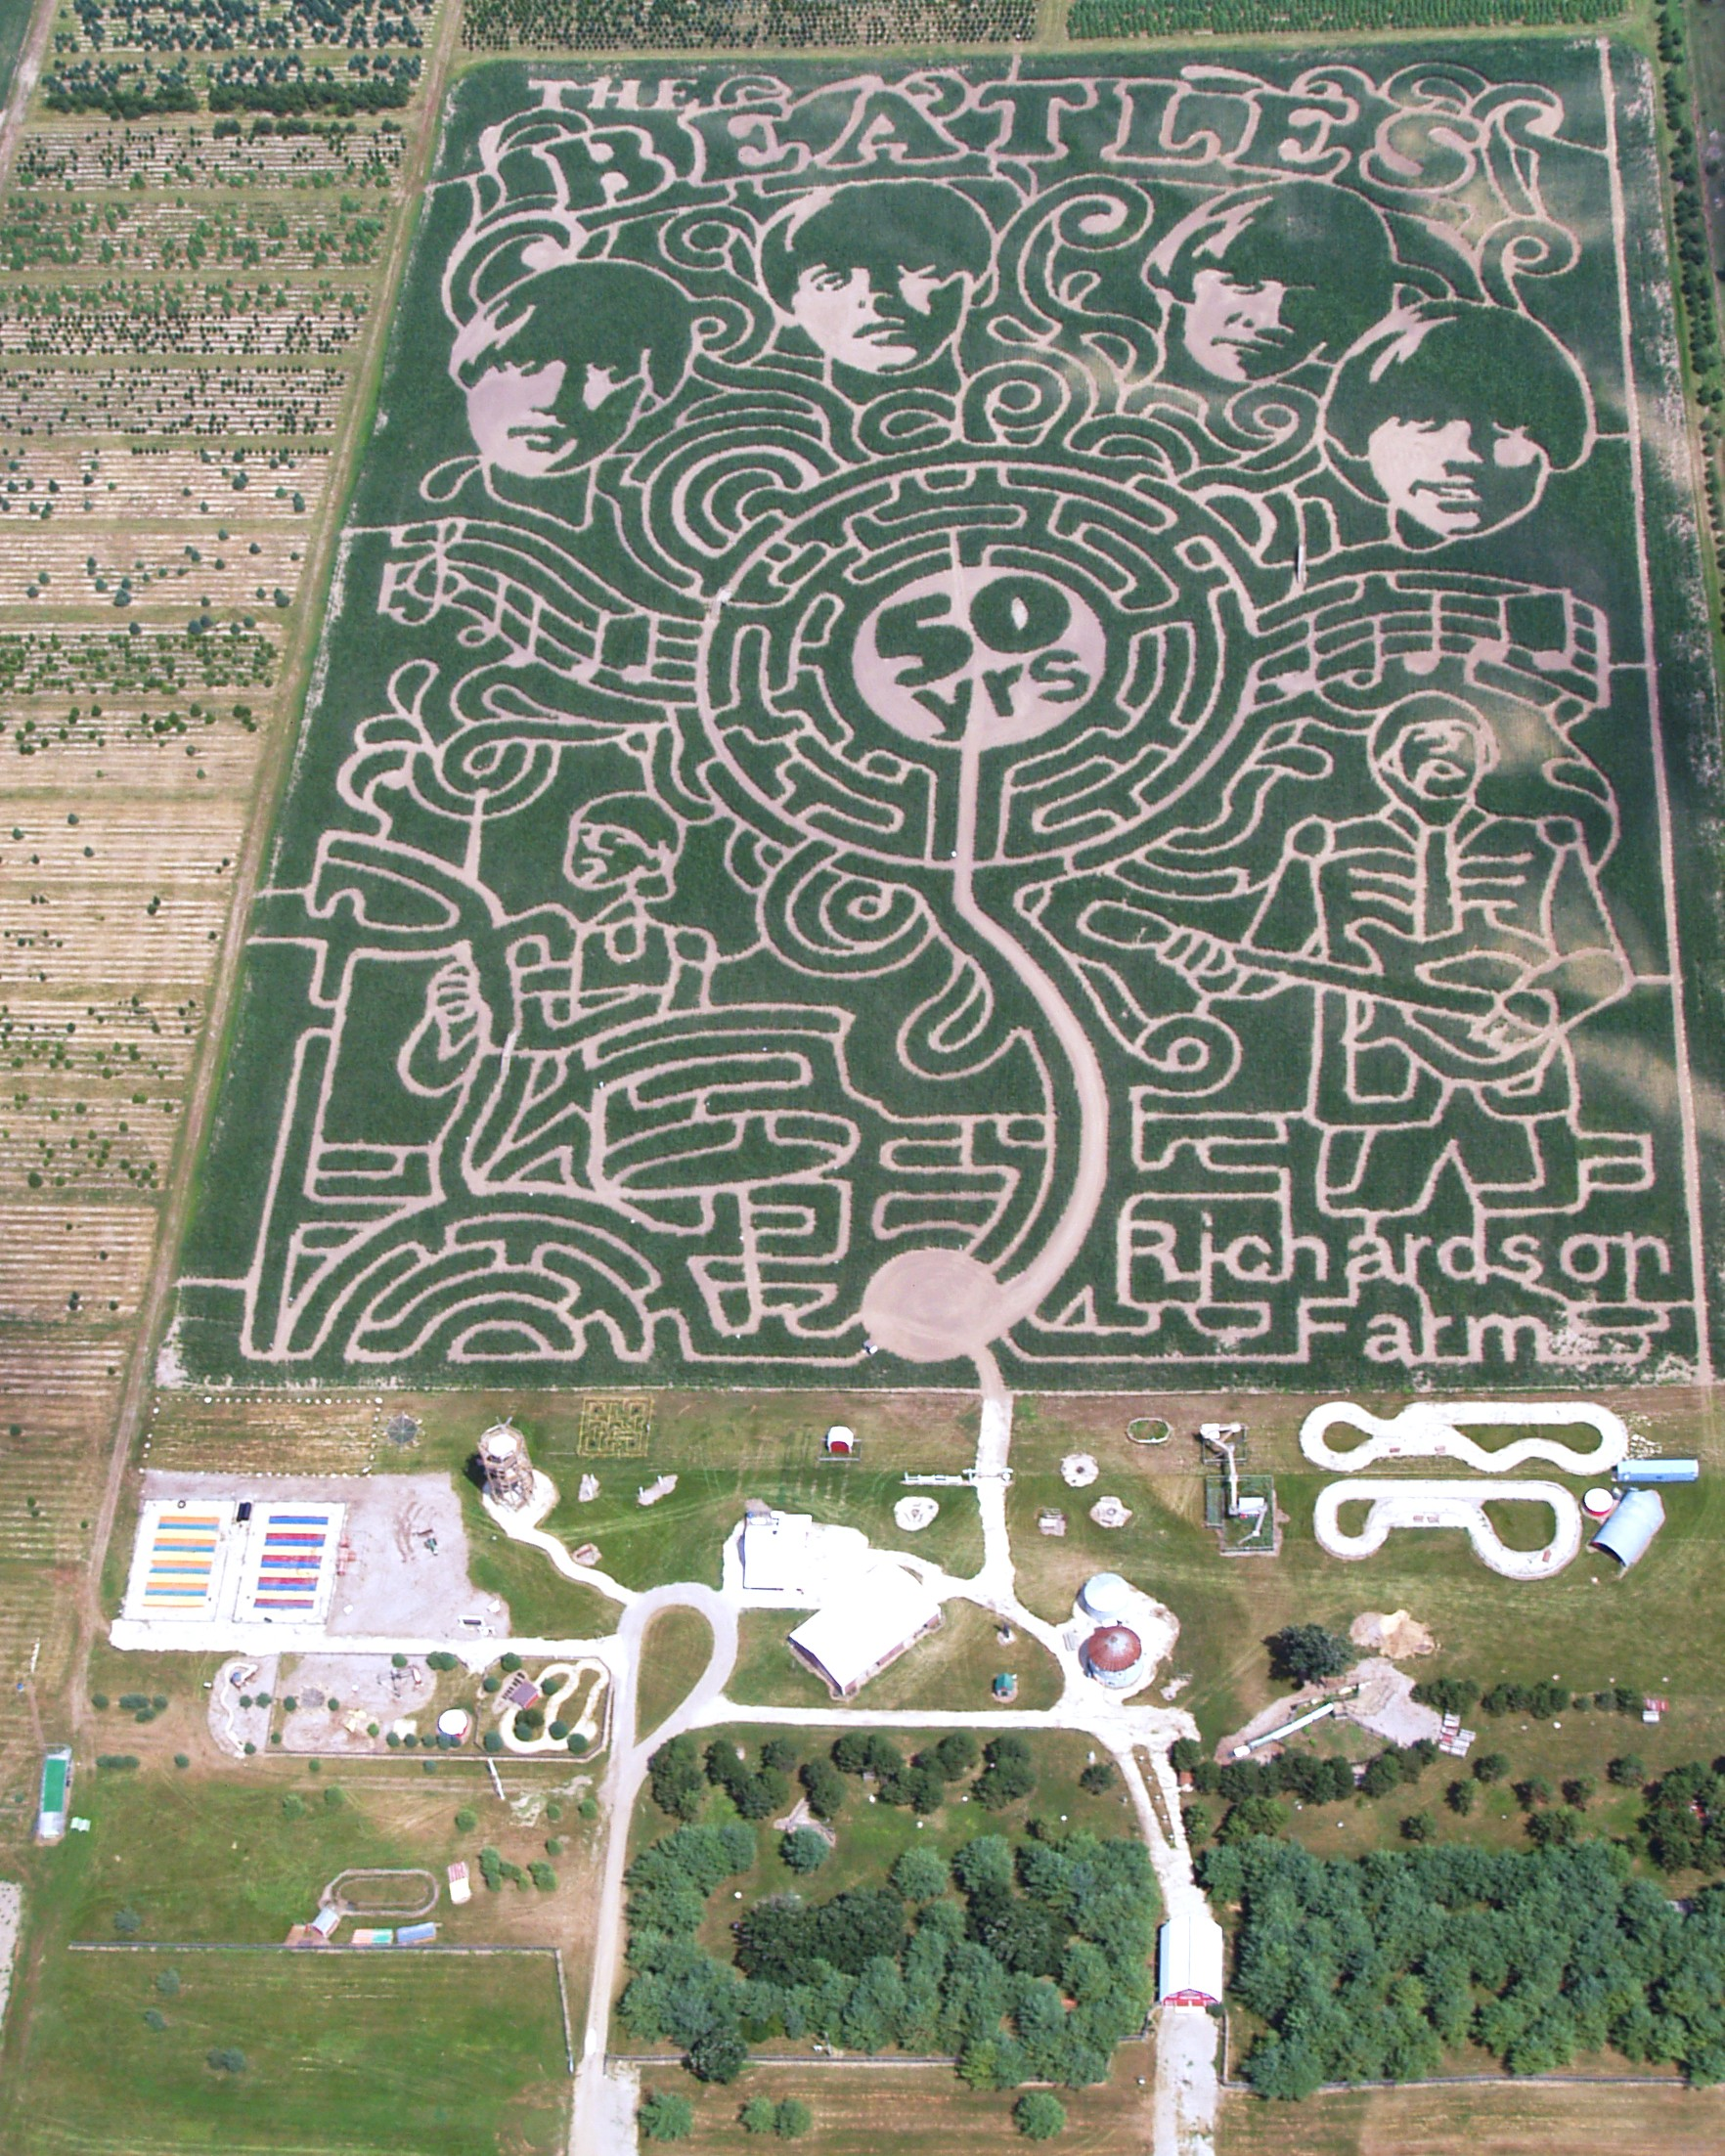 2013 Corn Maze - 50 Years of the Beatles